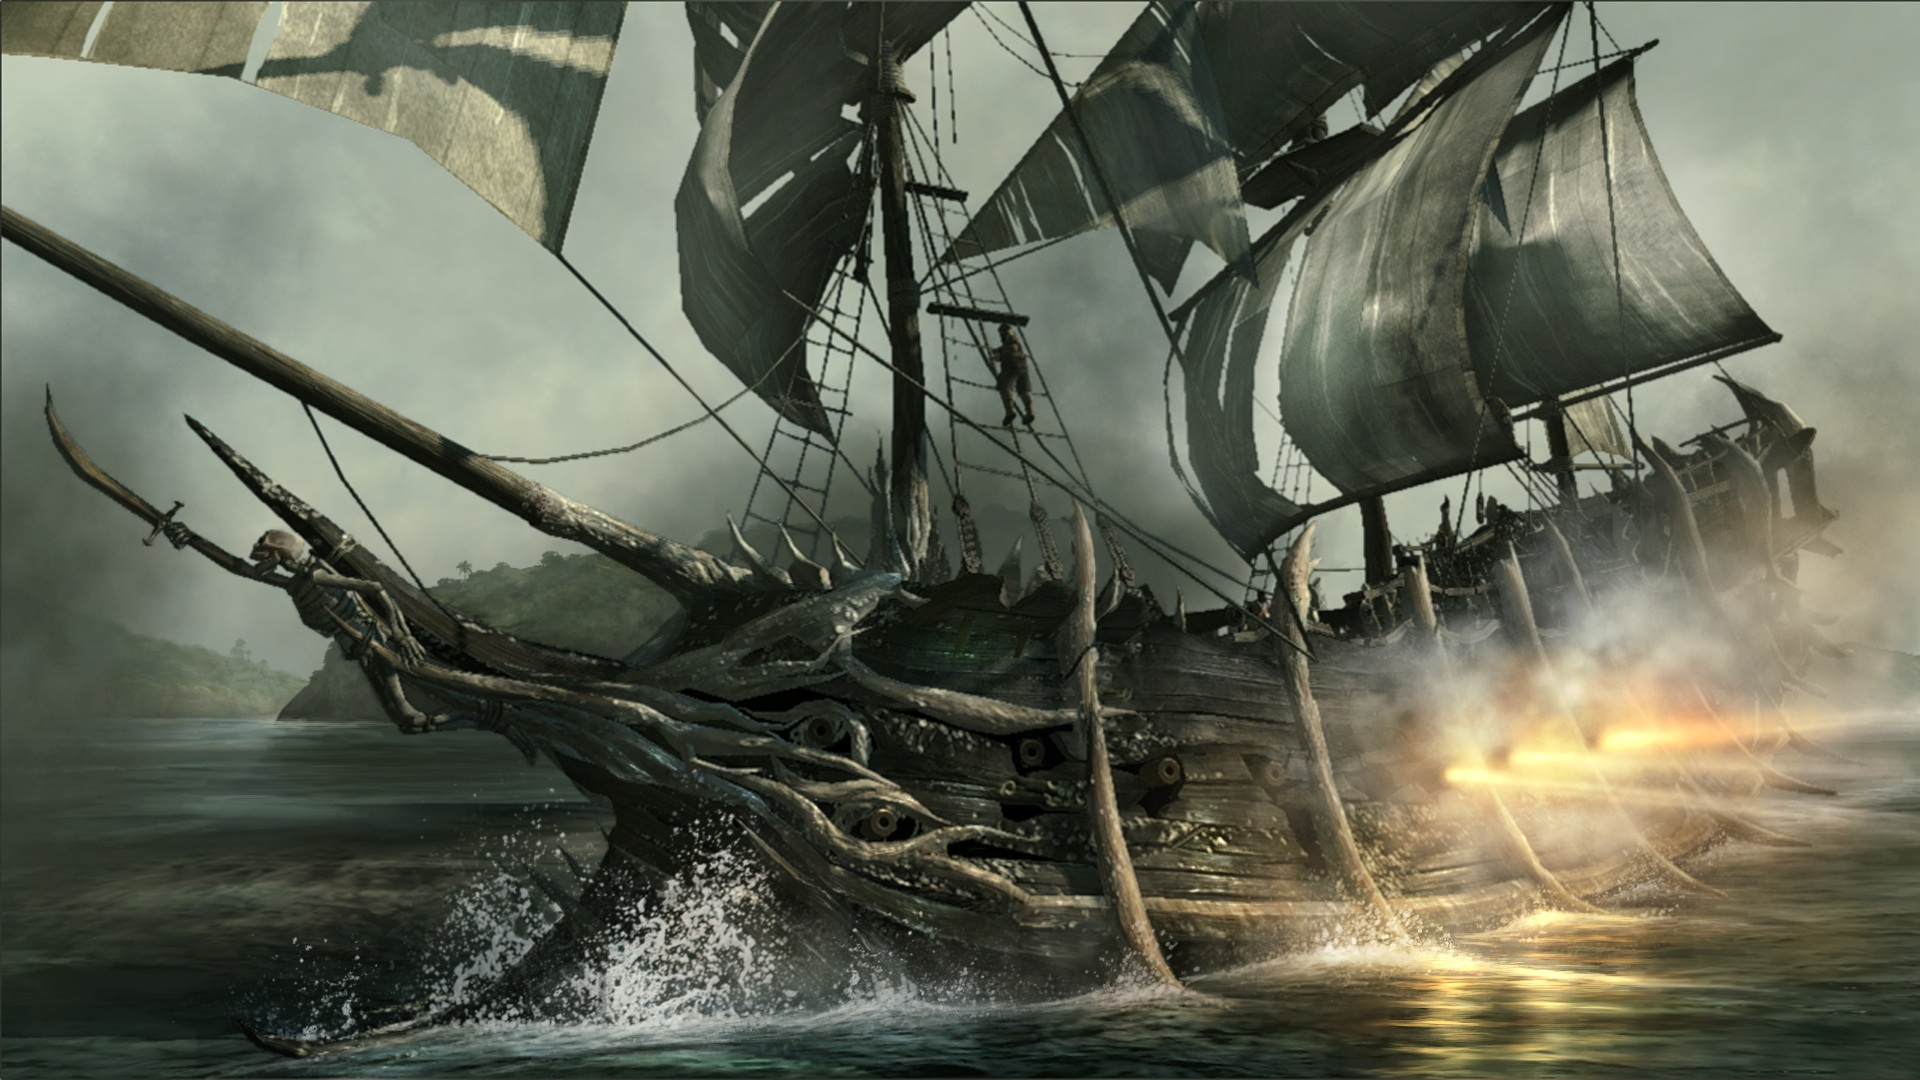 Jolly Roger Pan Pirate Ship Wallpapers  HD Wallpapers 1920x1080